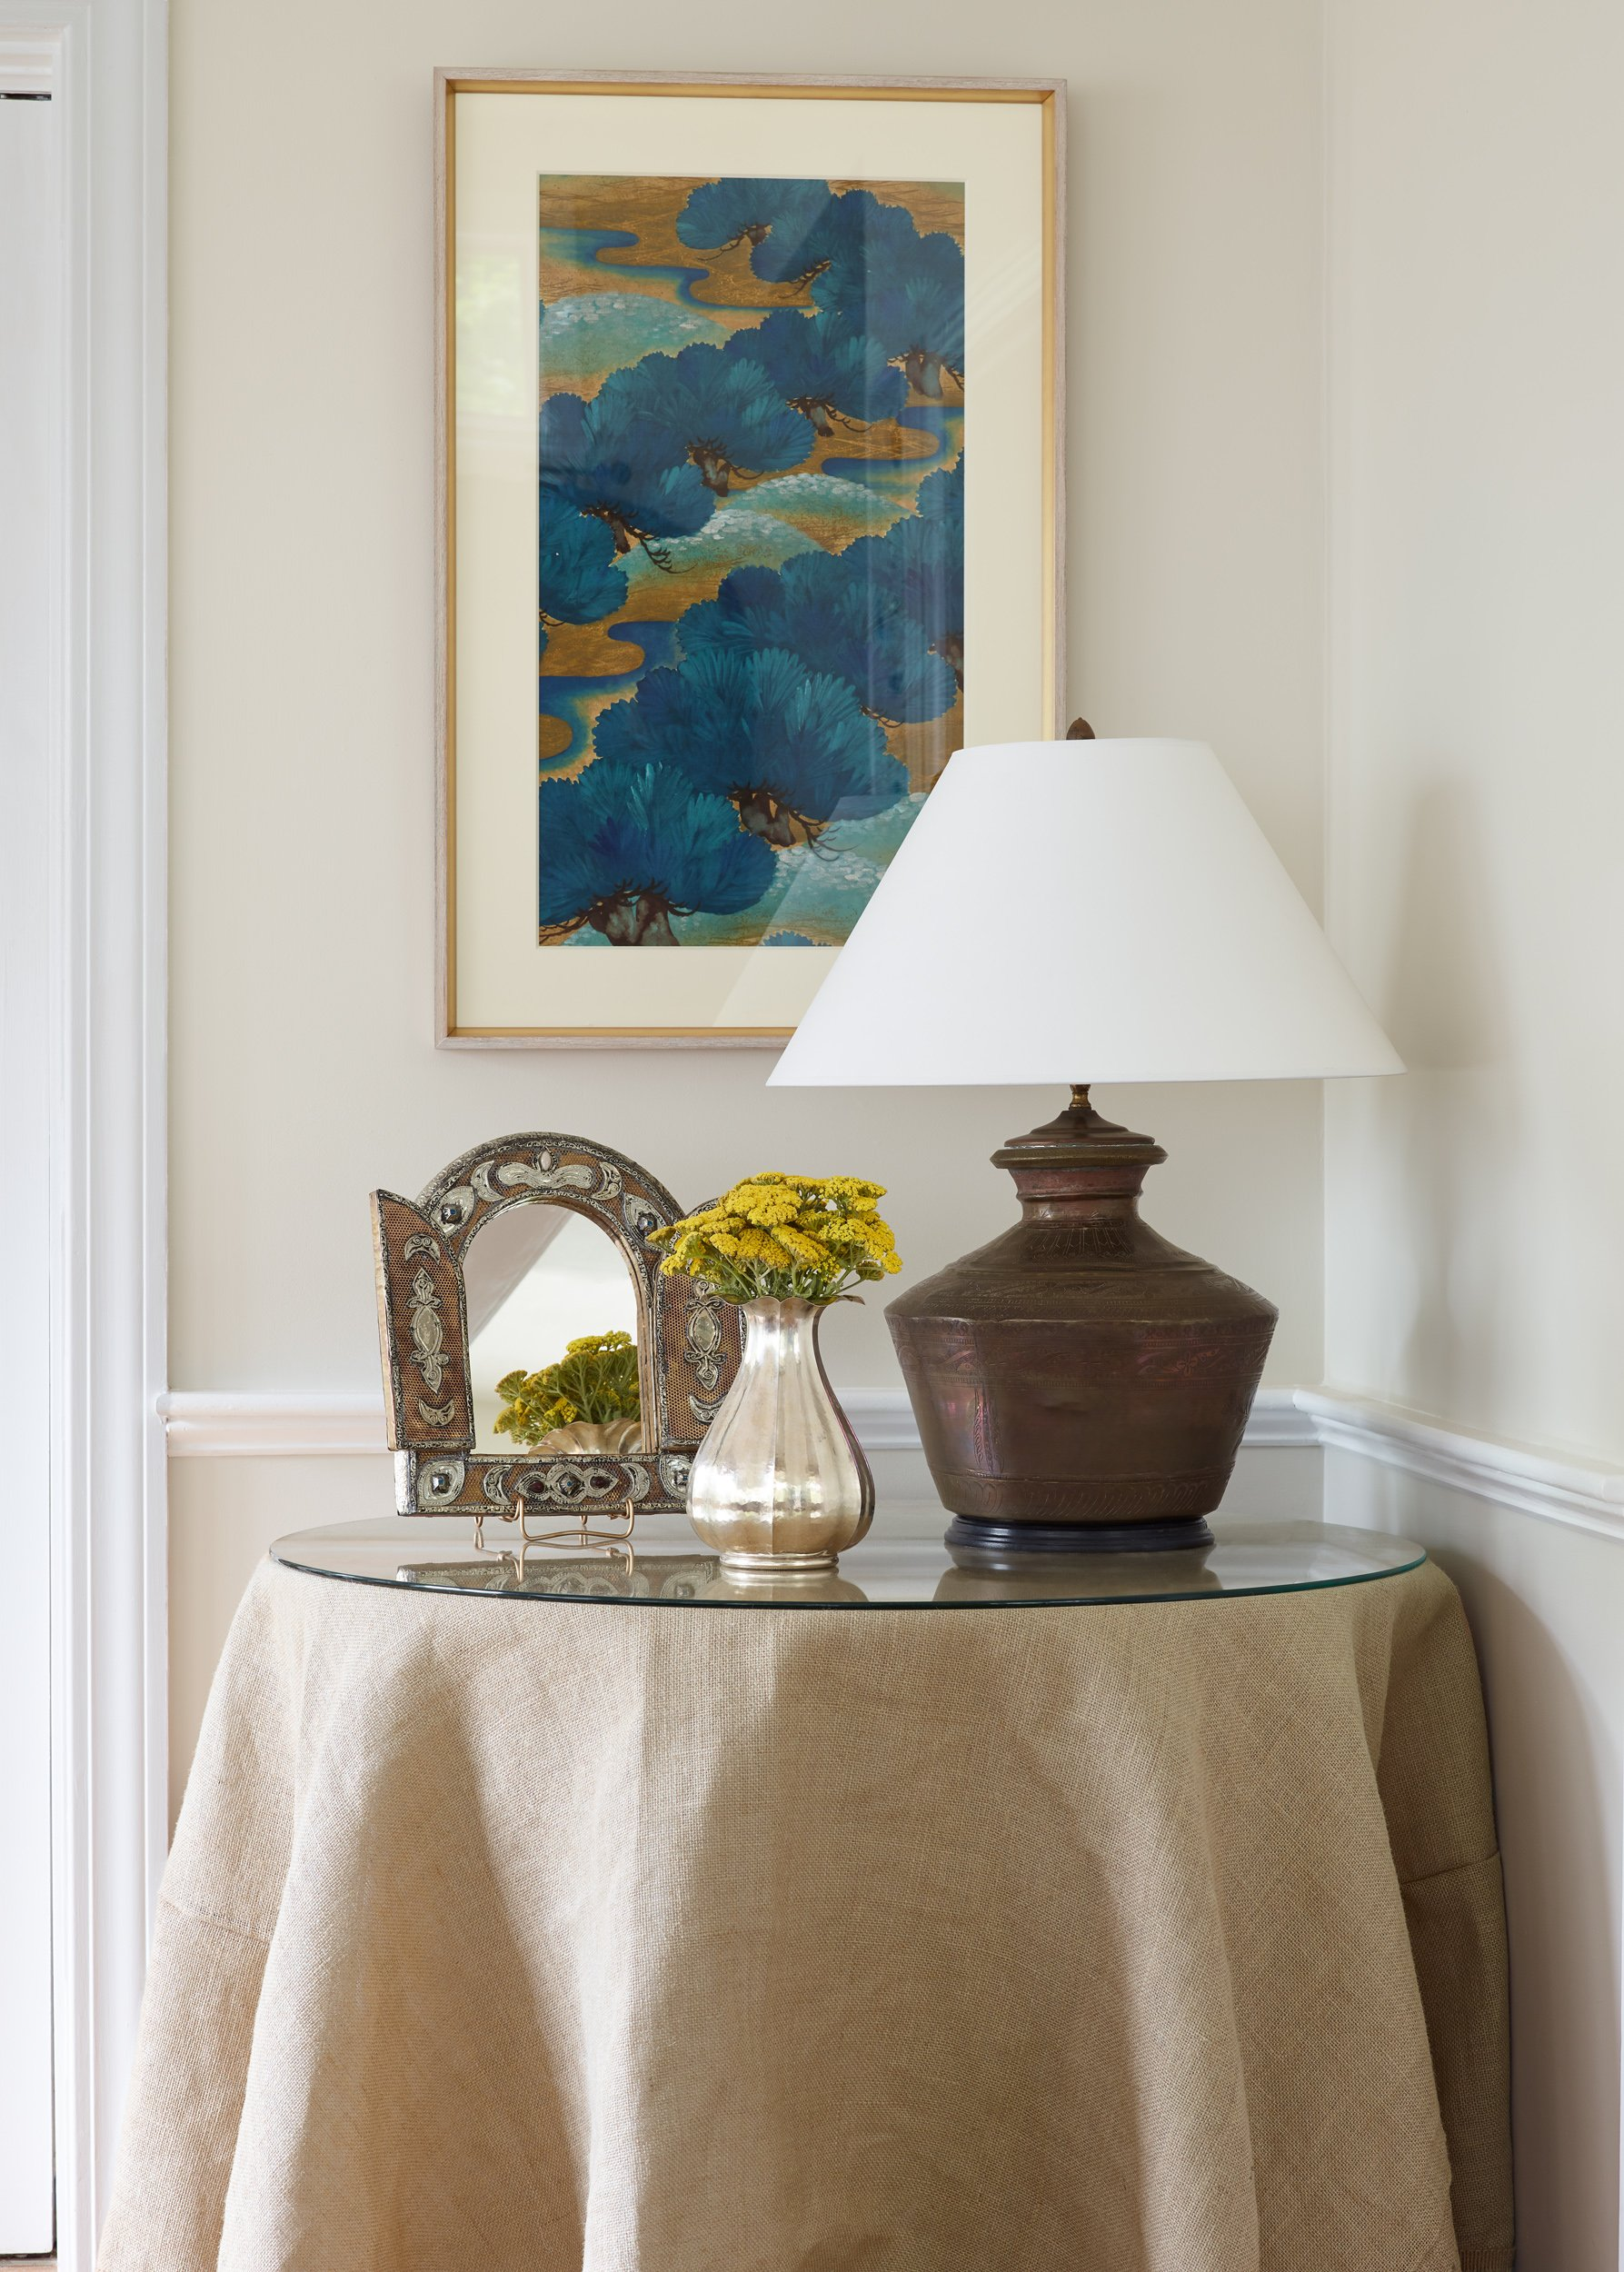 Design Tip:Should Art Match the Colors in Your Room?